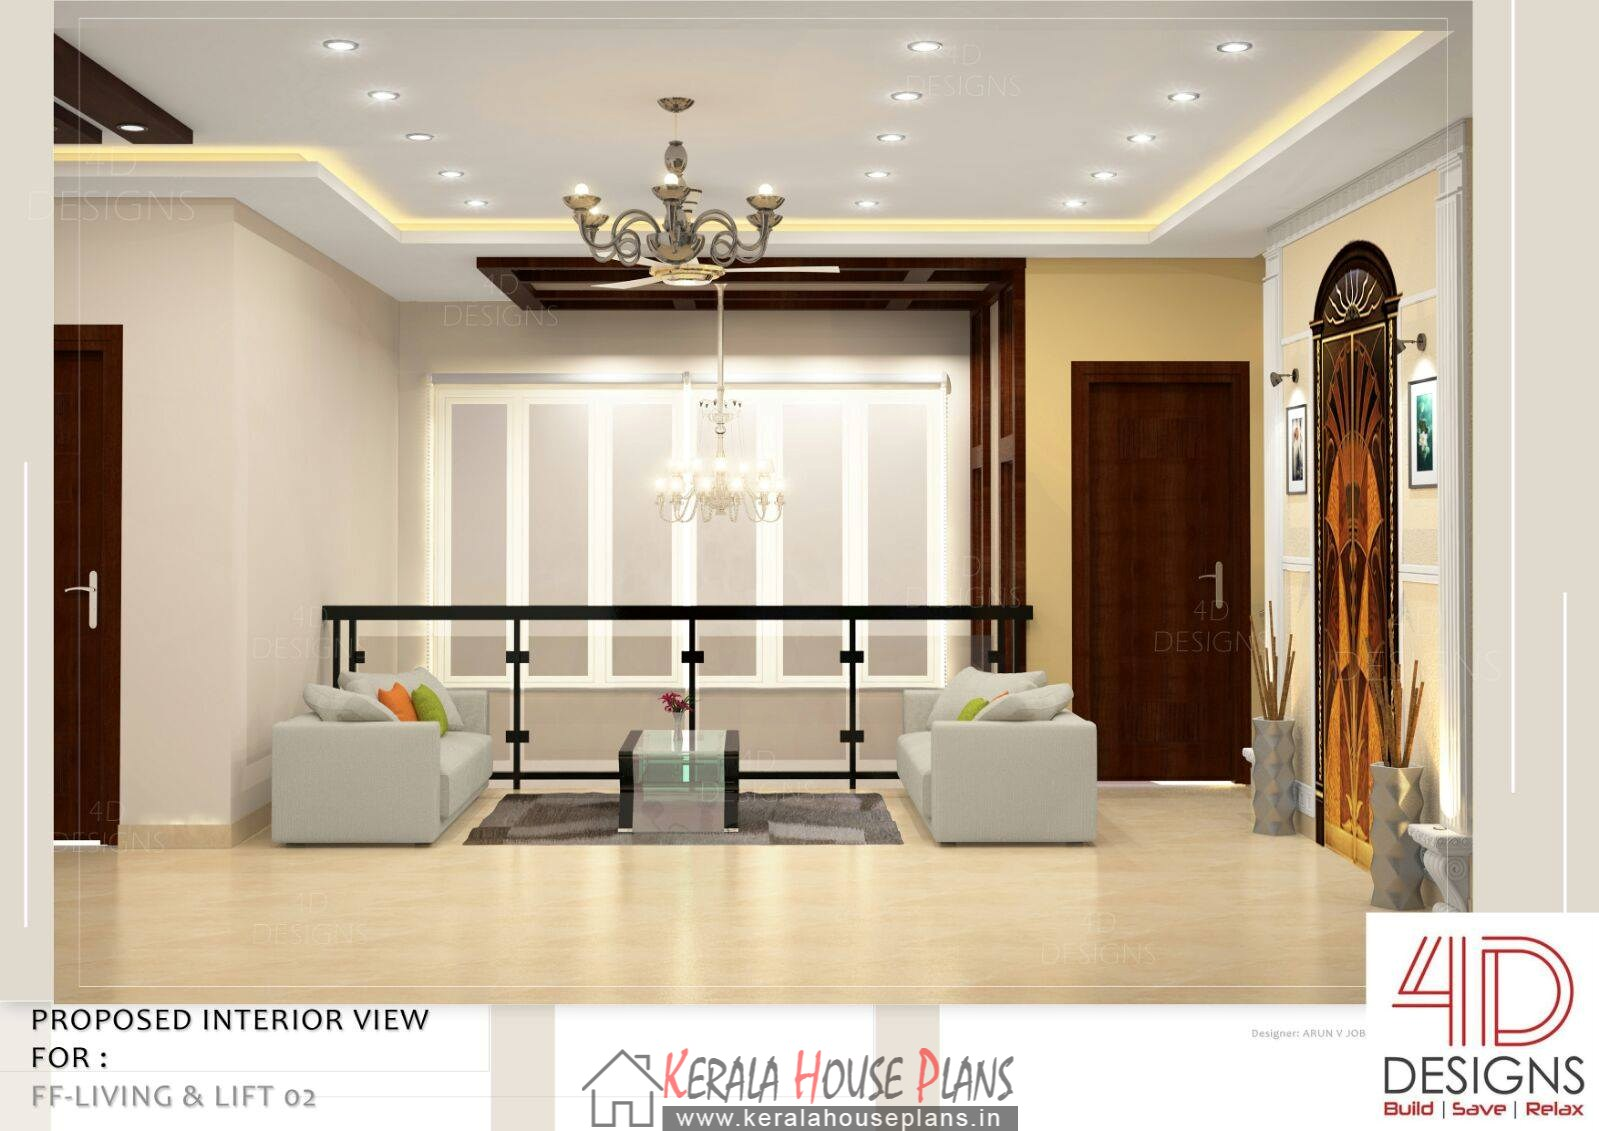 Dining kitchen living room interior designs kerala home for Kerala home interior designs photos